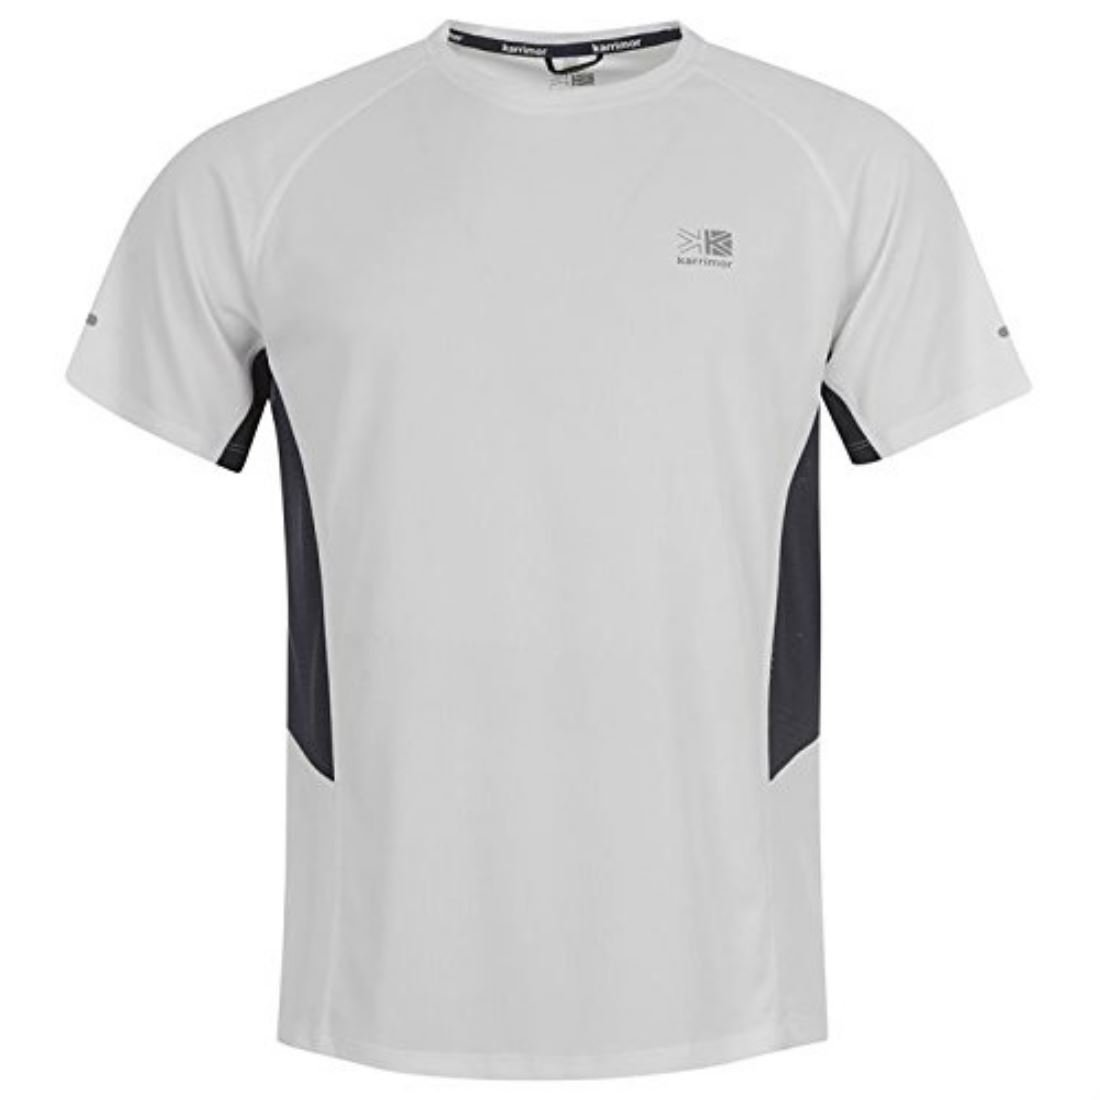 Karrimor Mens Short Sleeve Run T Shirt Breathable Running Jogging Sport Top:  Amazon.co.uk: Sports & Outdoors